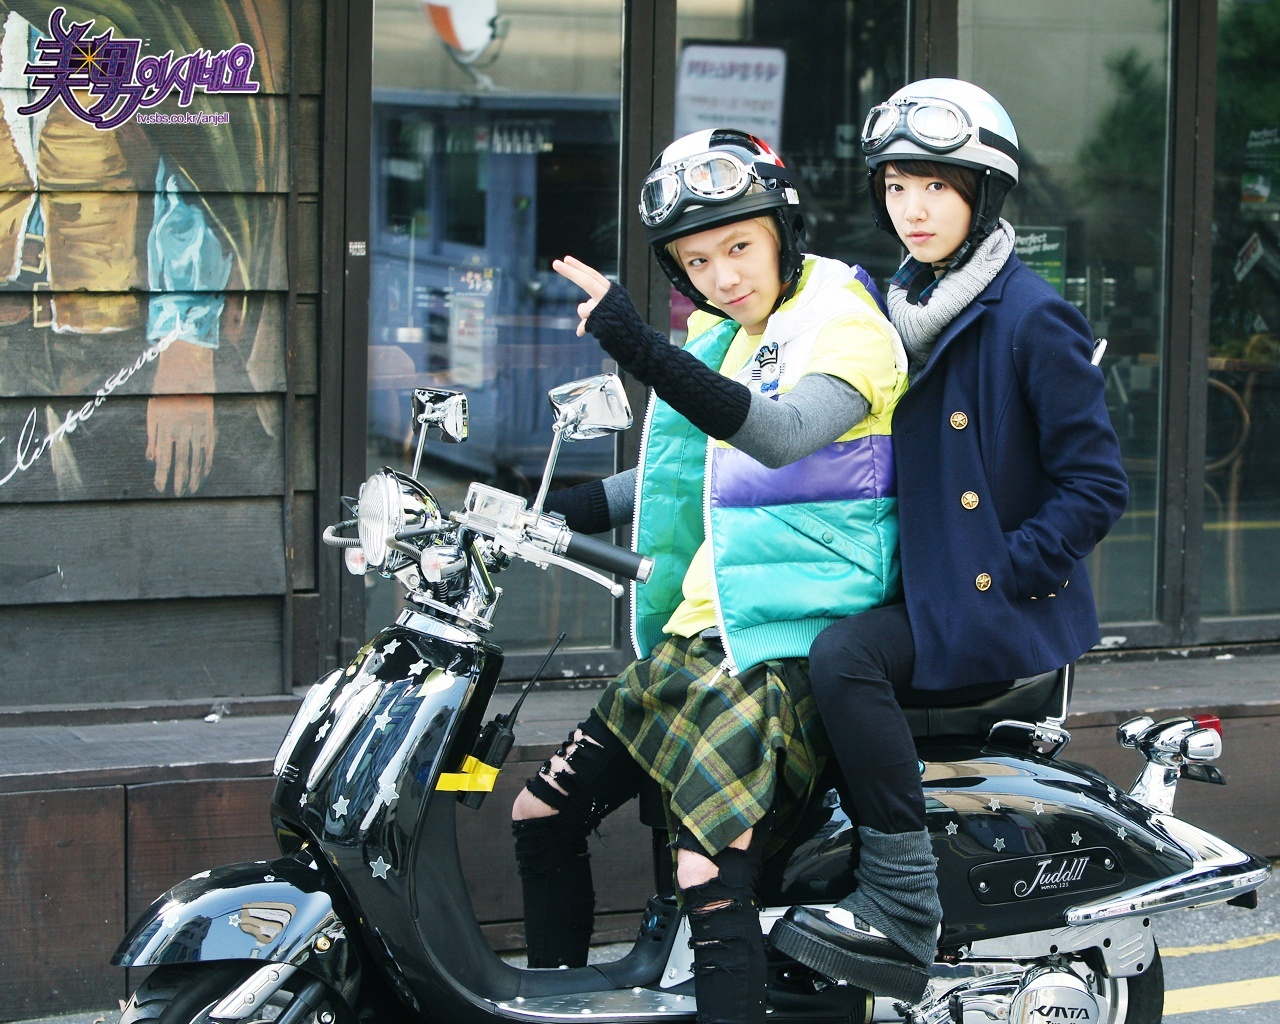 lee hong ki and park shin hye dating It's no use being on board a doomed titanic, so we should take it upon ourselves to find new horizons which reminds me, i notice park shin-hye has been doing an awful lot of photoshoots with lee jong-suk lately, and kim young-kwang even made a surprise visit at her fan-meeting kim tan who ___.